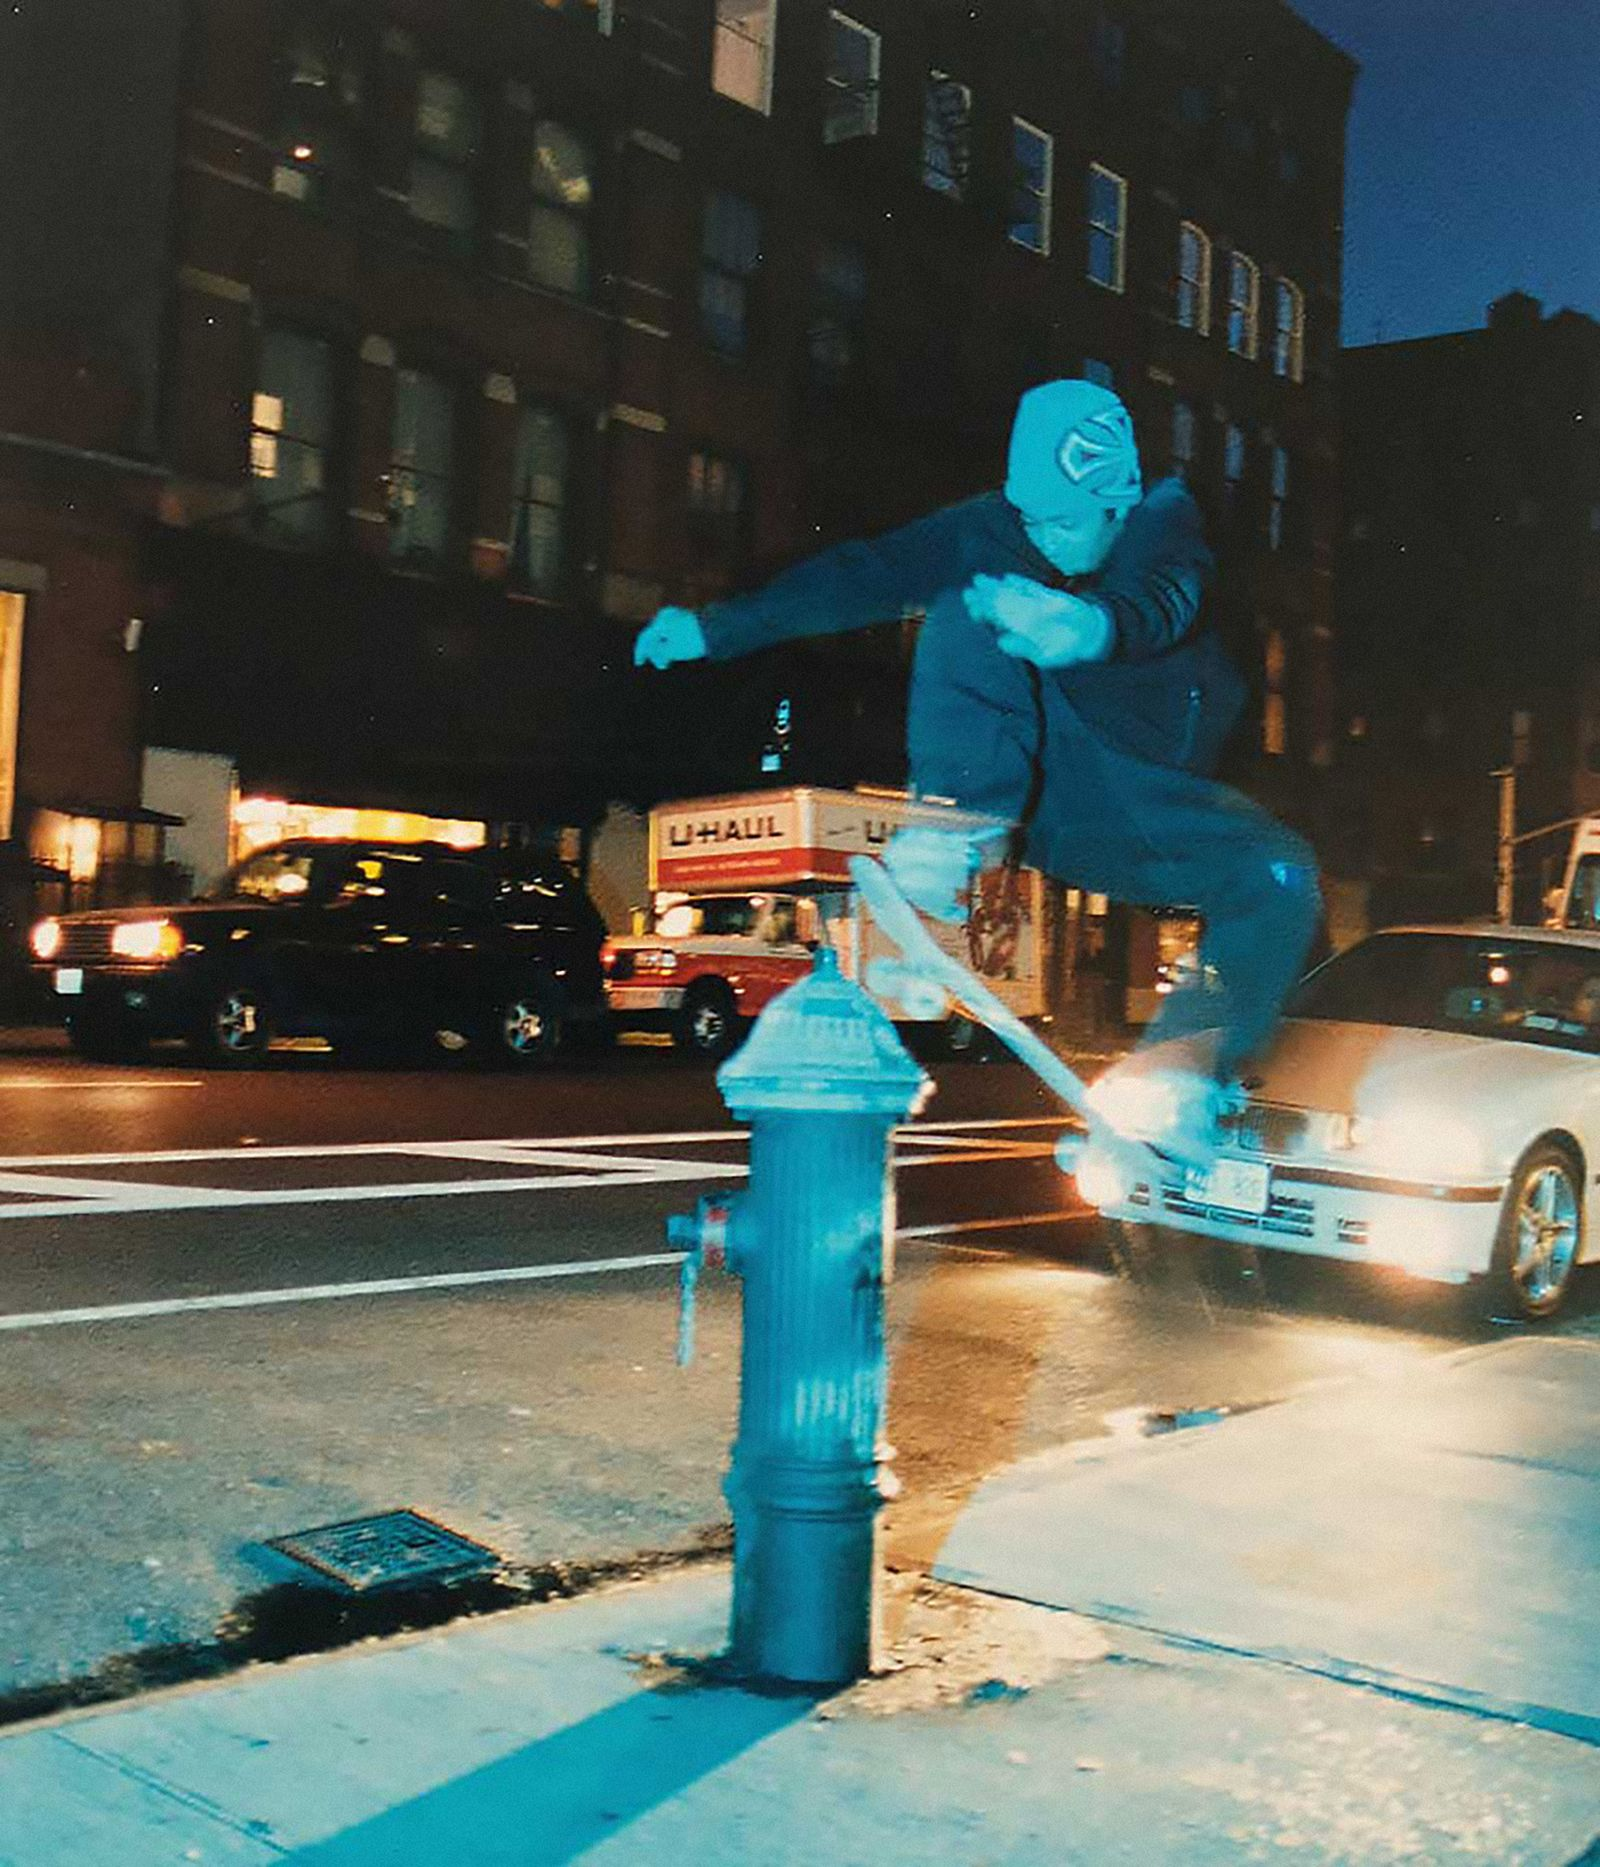 downtown-nyc-mid-late-90s-08